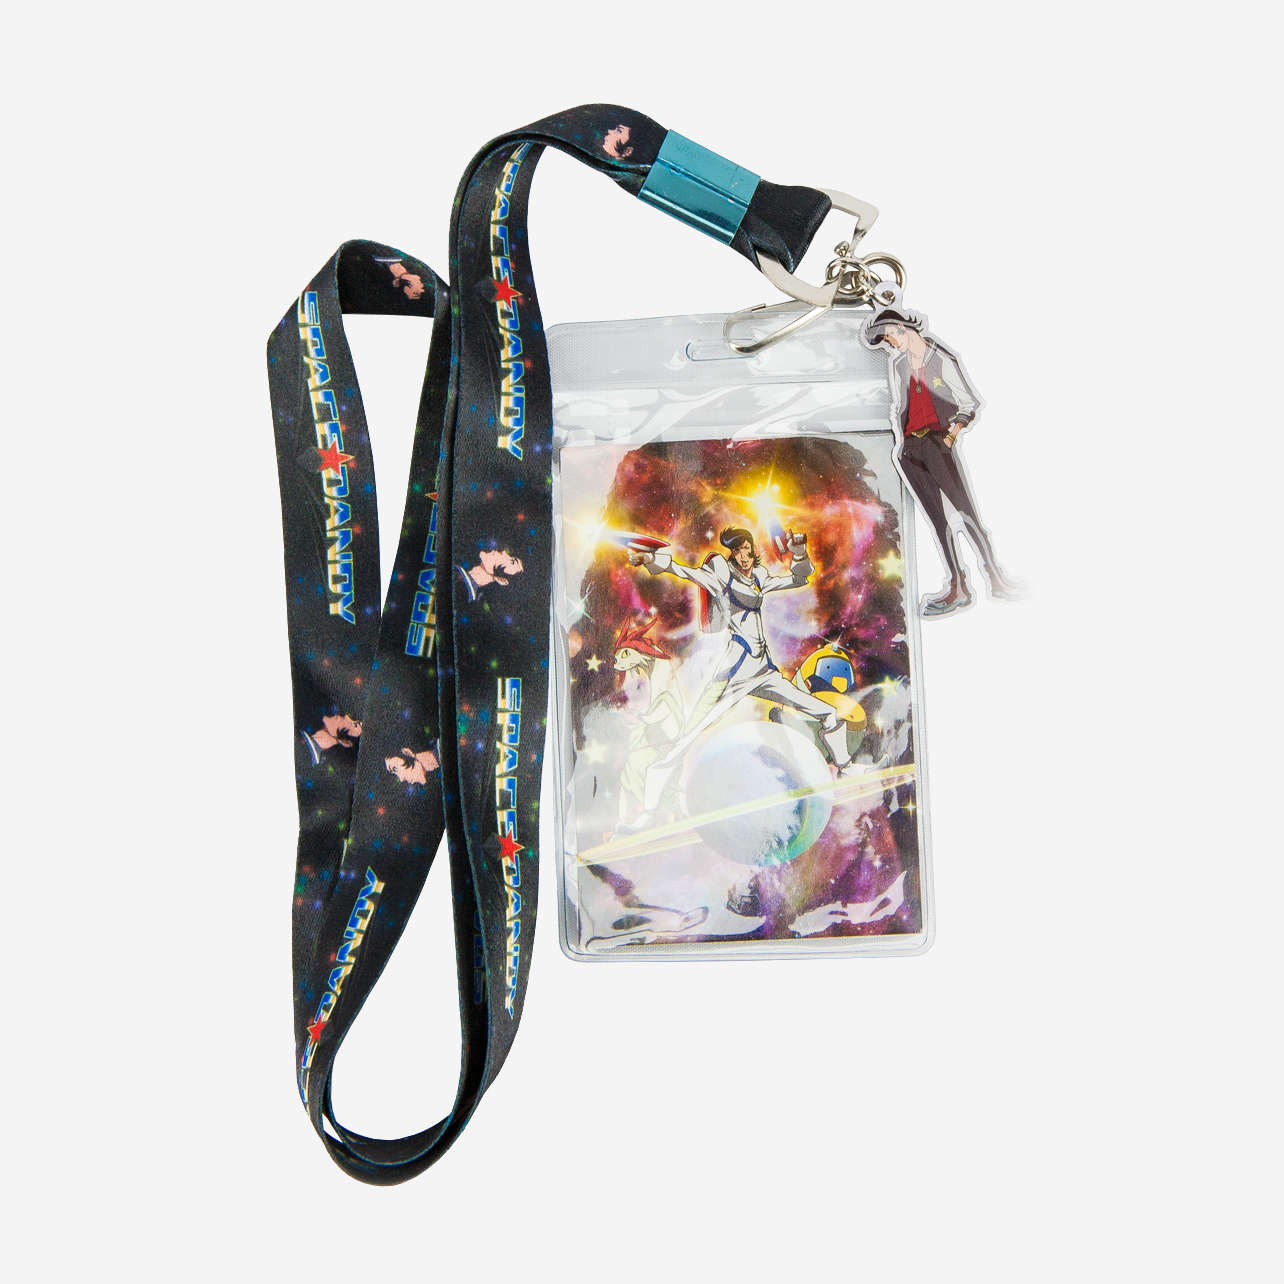 Dandy Lanyard Accessories